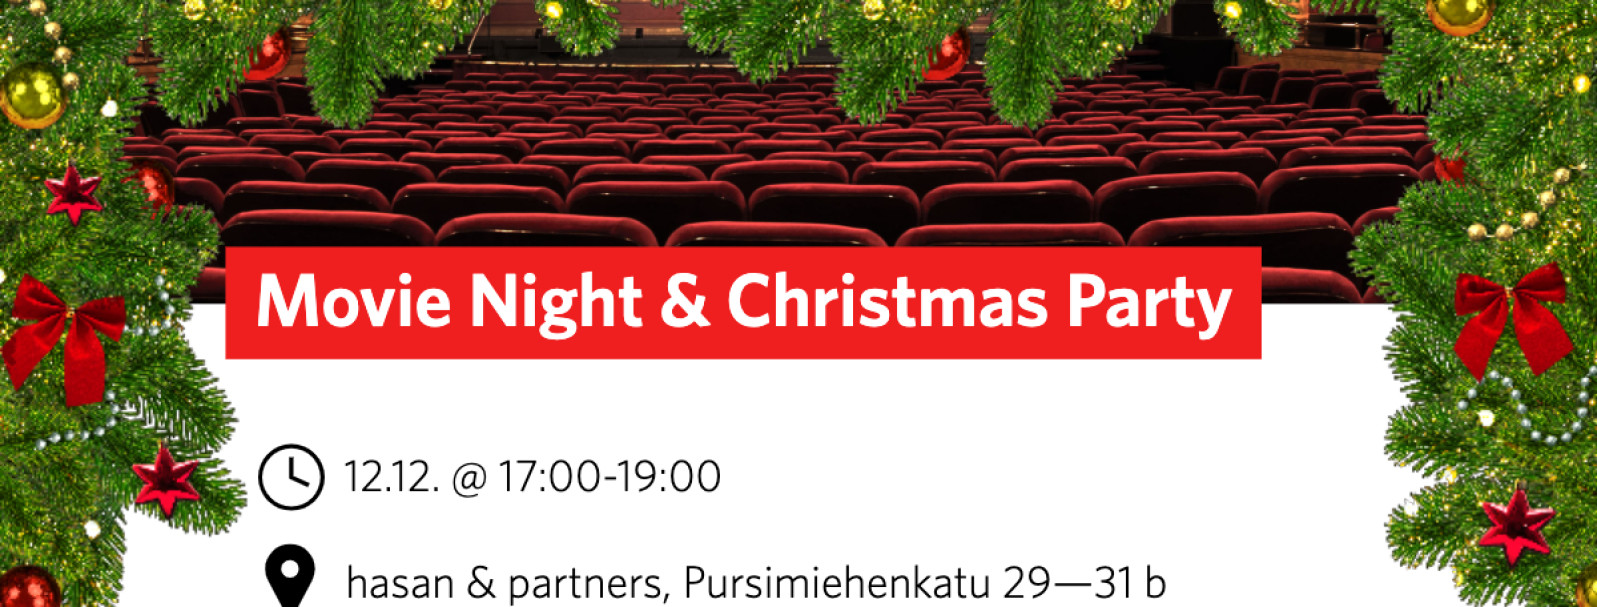 SDN Movie Night & Christmas Party